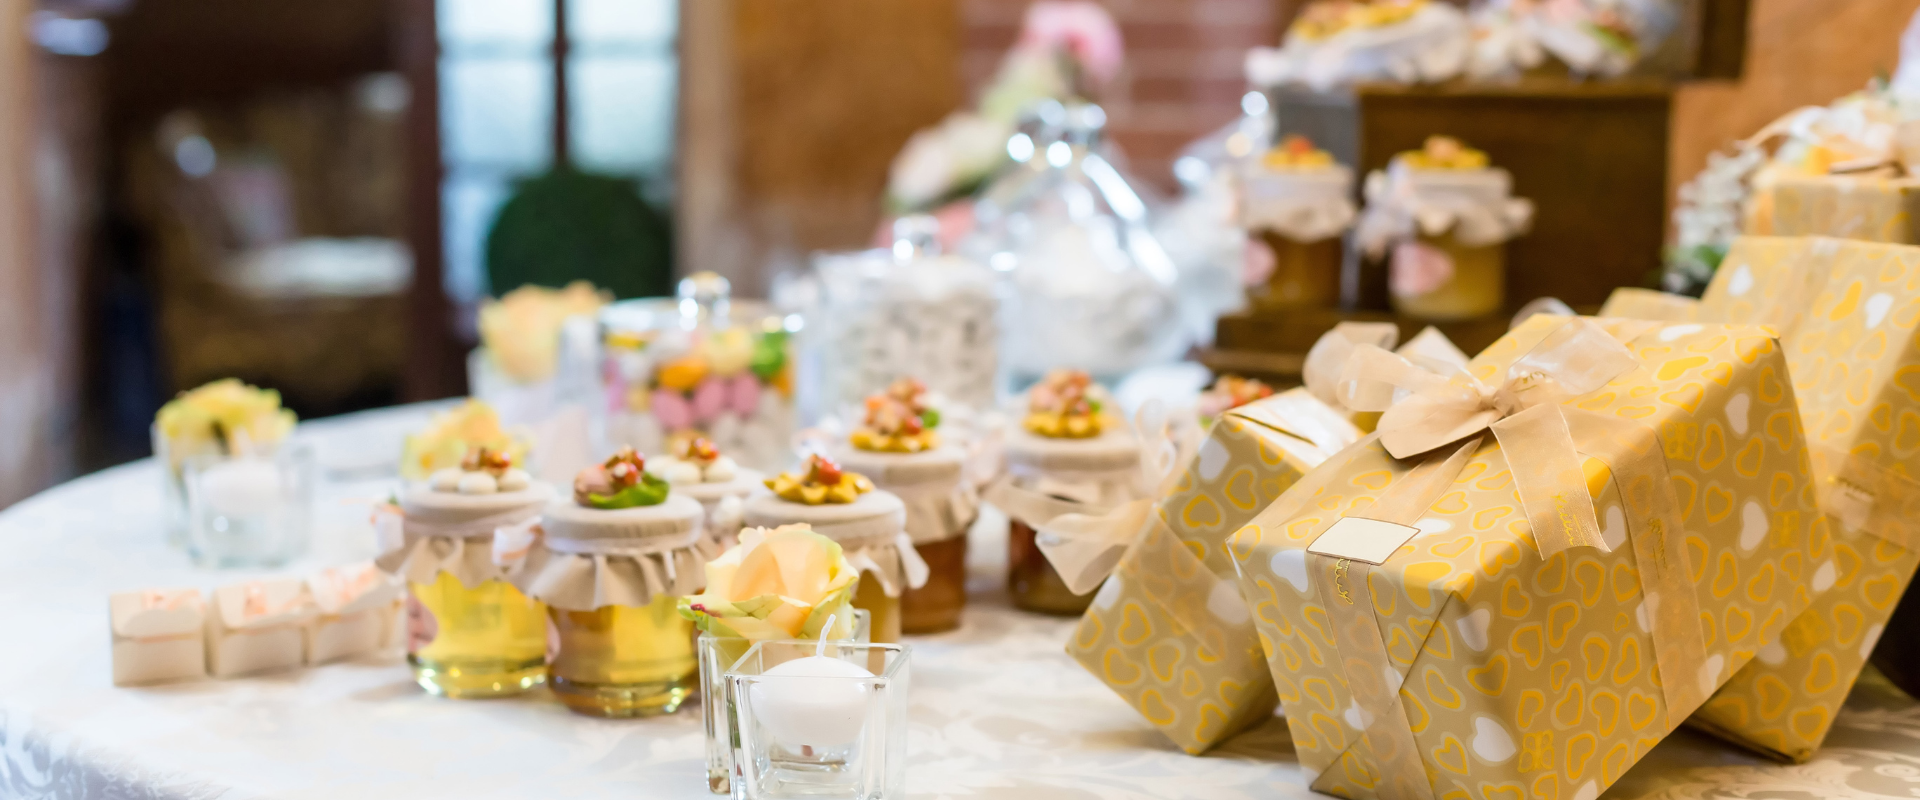 Tips for Choosing Wedding Favors Your Guests Will (Actually) Want